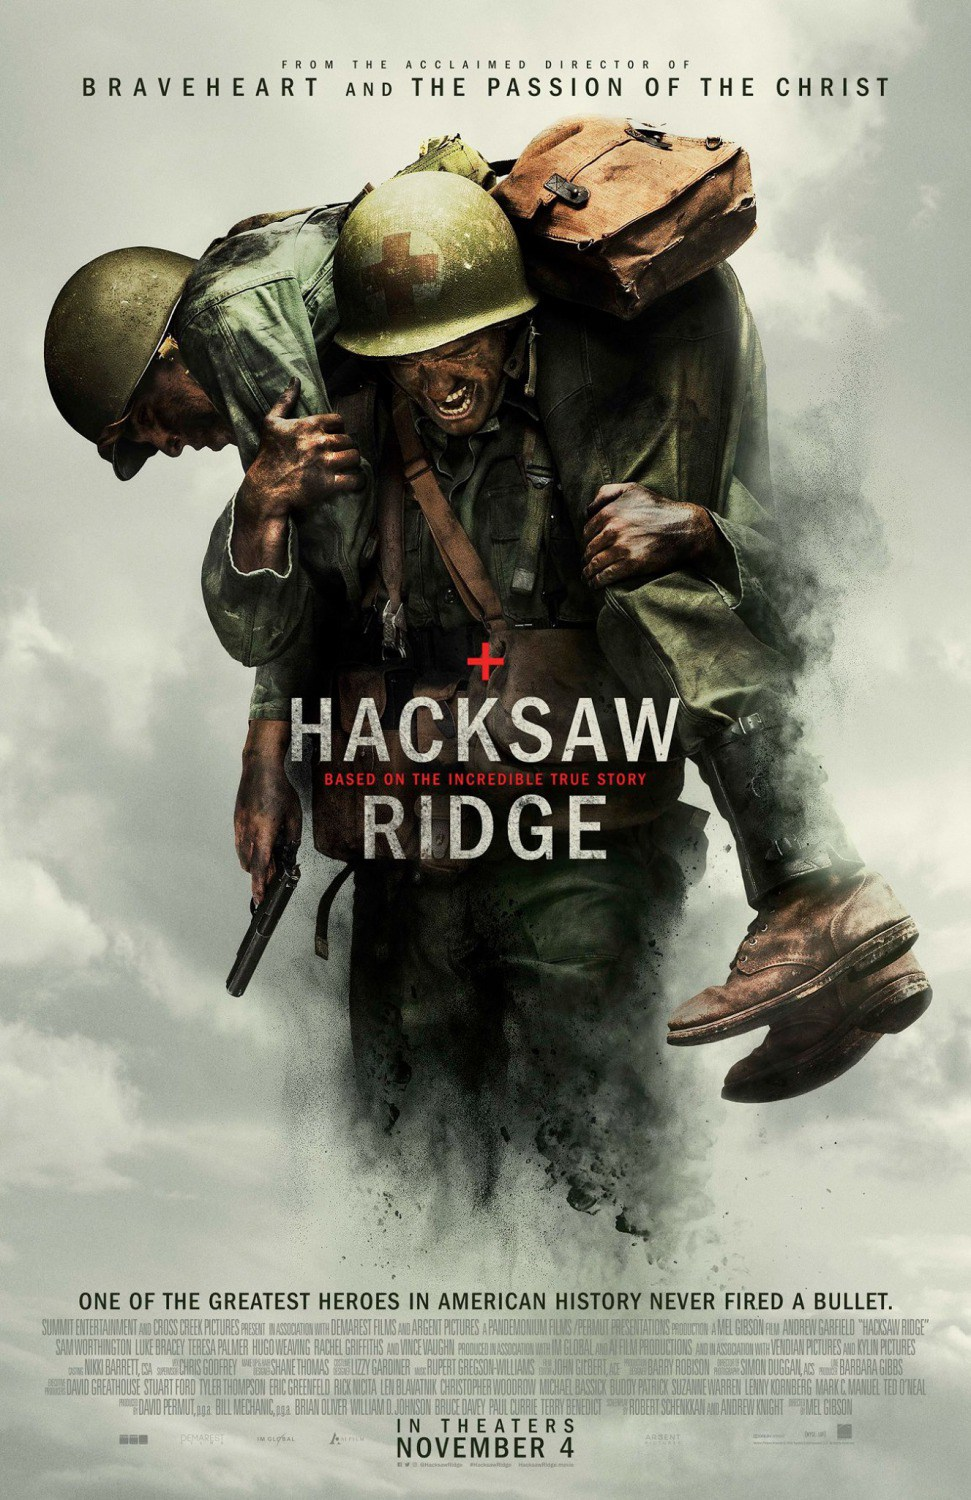 Resultado de imagen para Hacksaw Ridge official movie poster